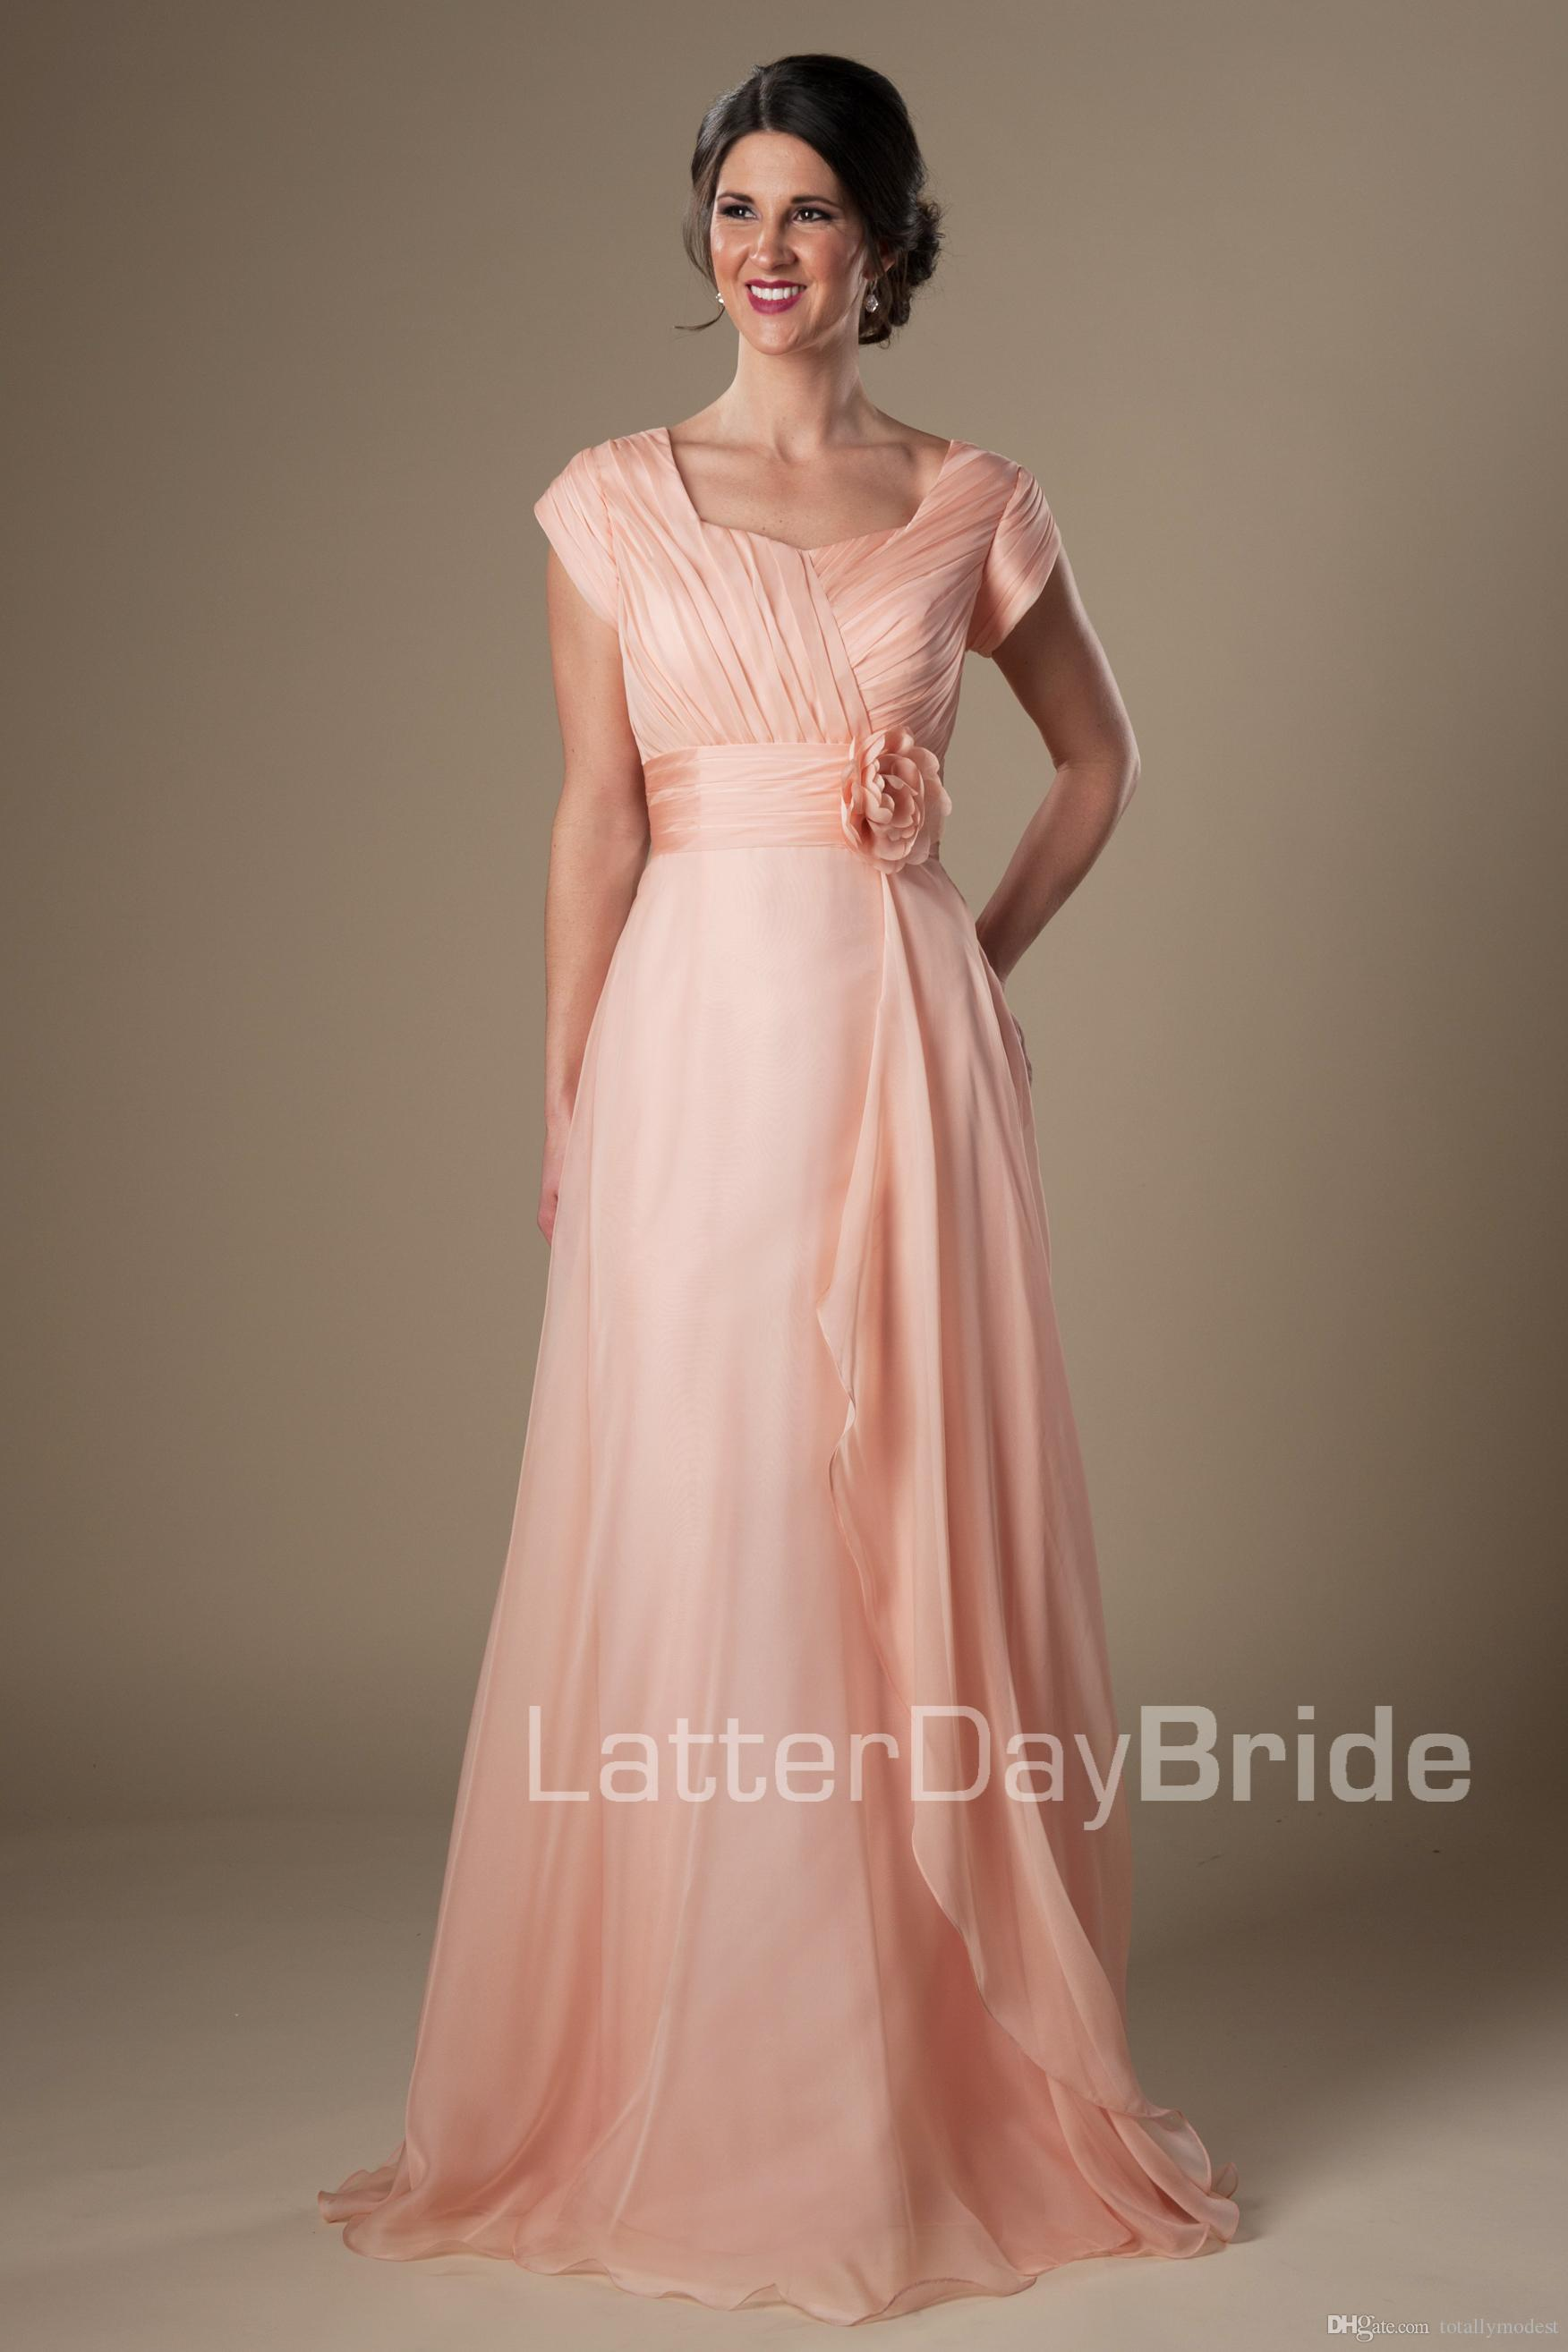 c0567b9d420 Coral Chiffon Modest Bridesmaid Dresses Short Sleeves Long Flowers Evening  Wedding Party Dresses Floor Length Maids Of Honor Dresses Cheap Bridesmaid  ...